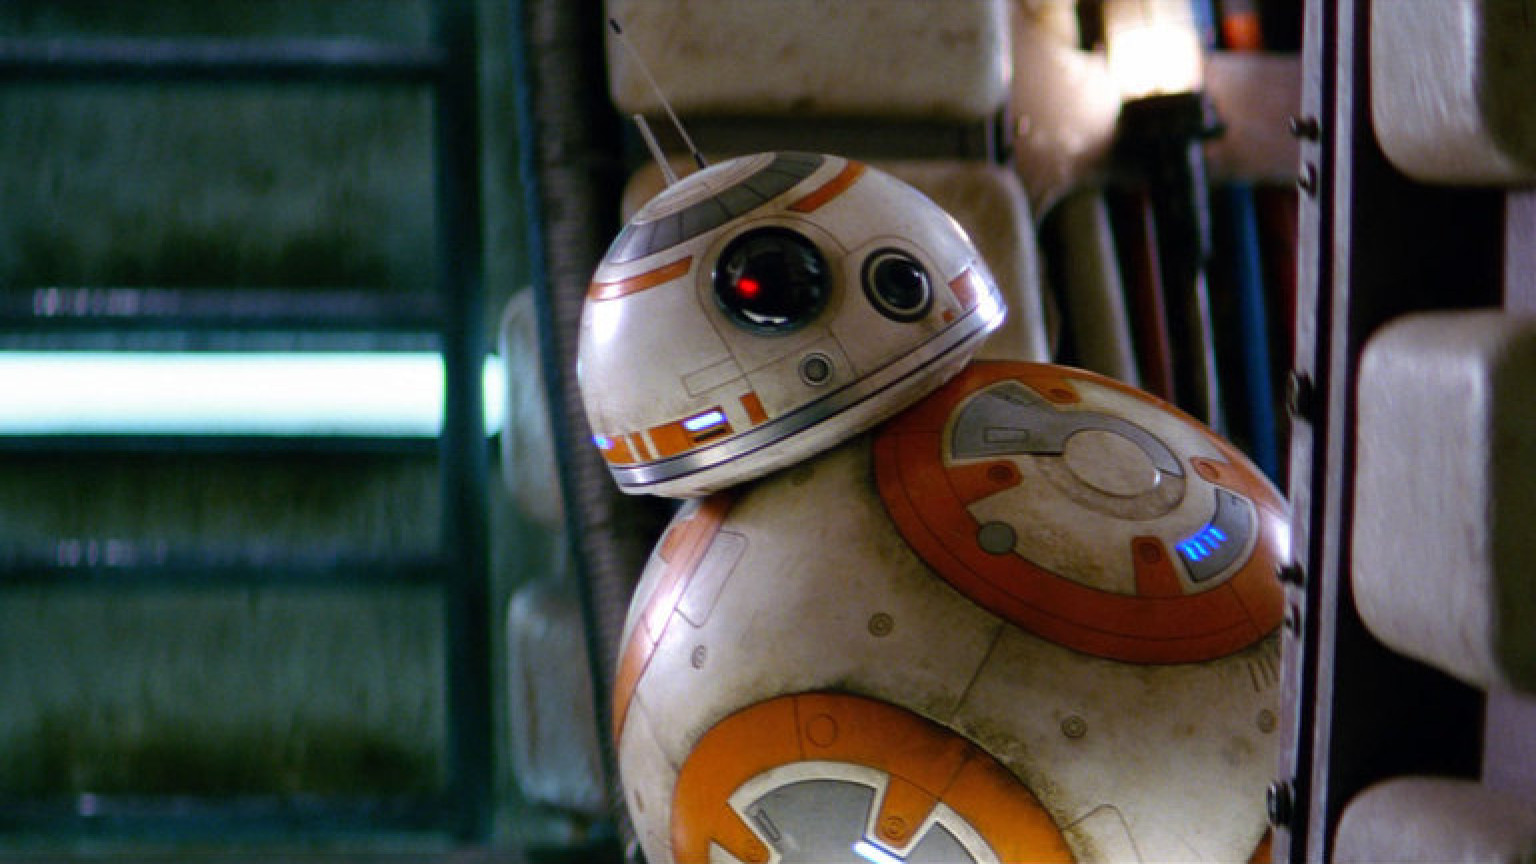 BB-8 is coming to Star Wars Battlefront 2 as a playable character